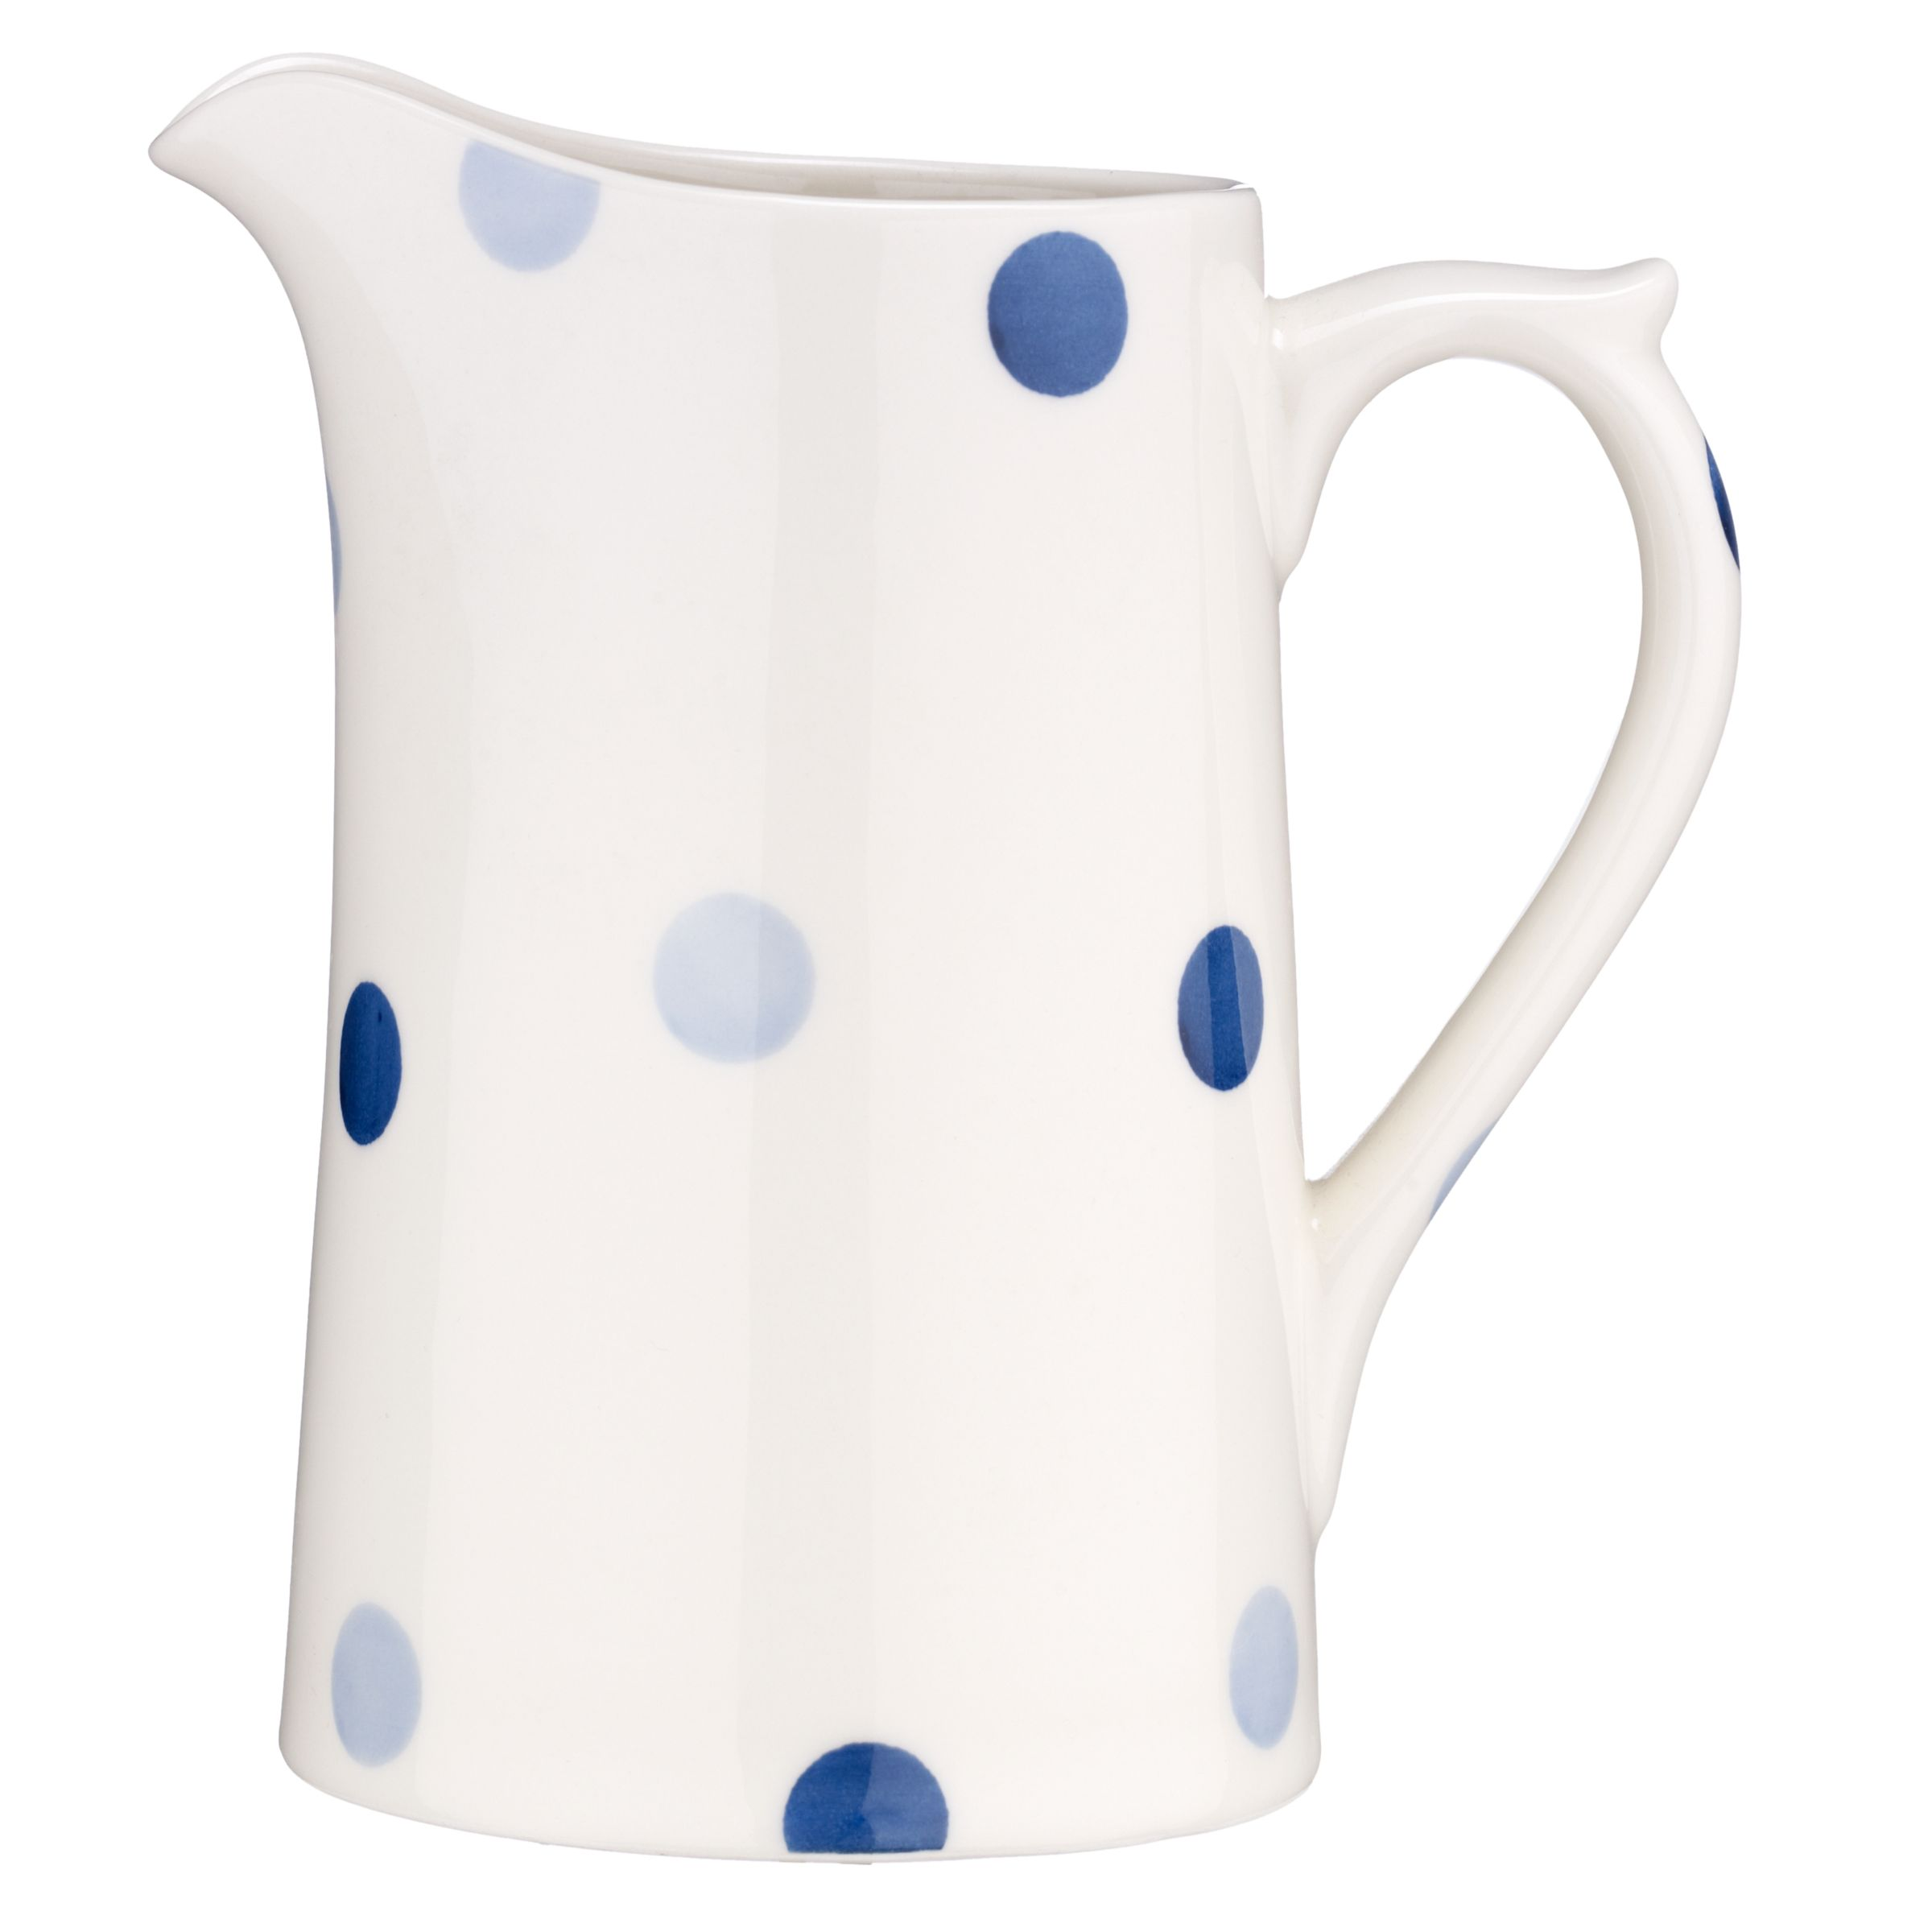 Fairmont & Main Blue Spot Large Jug